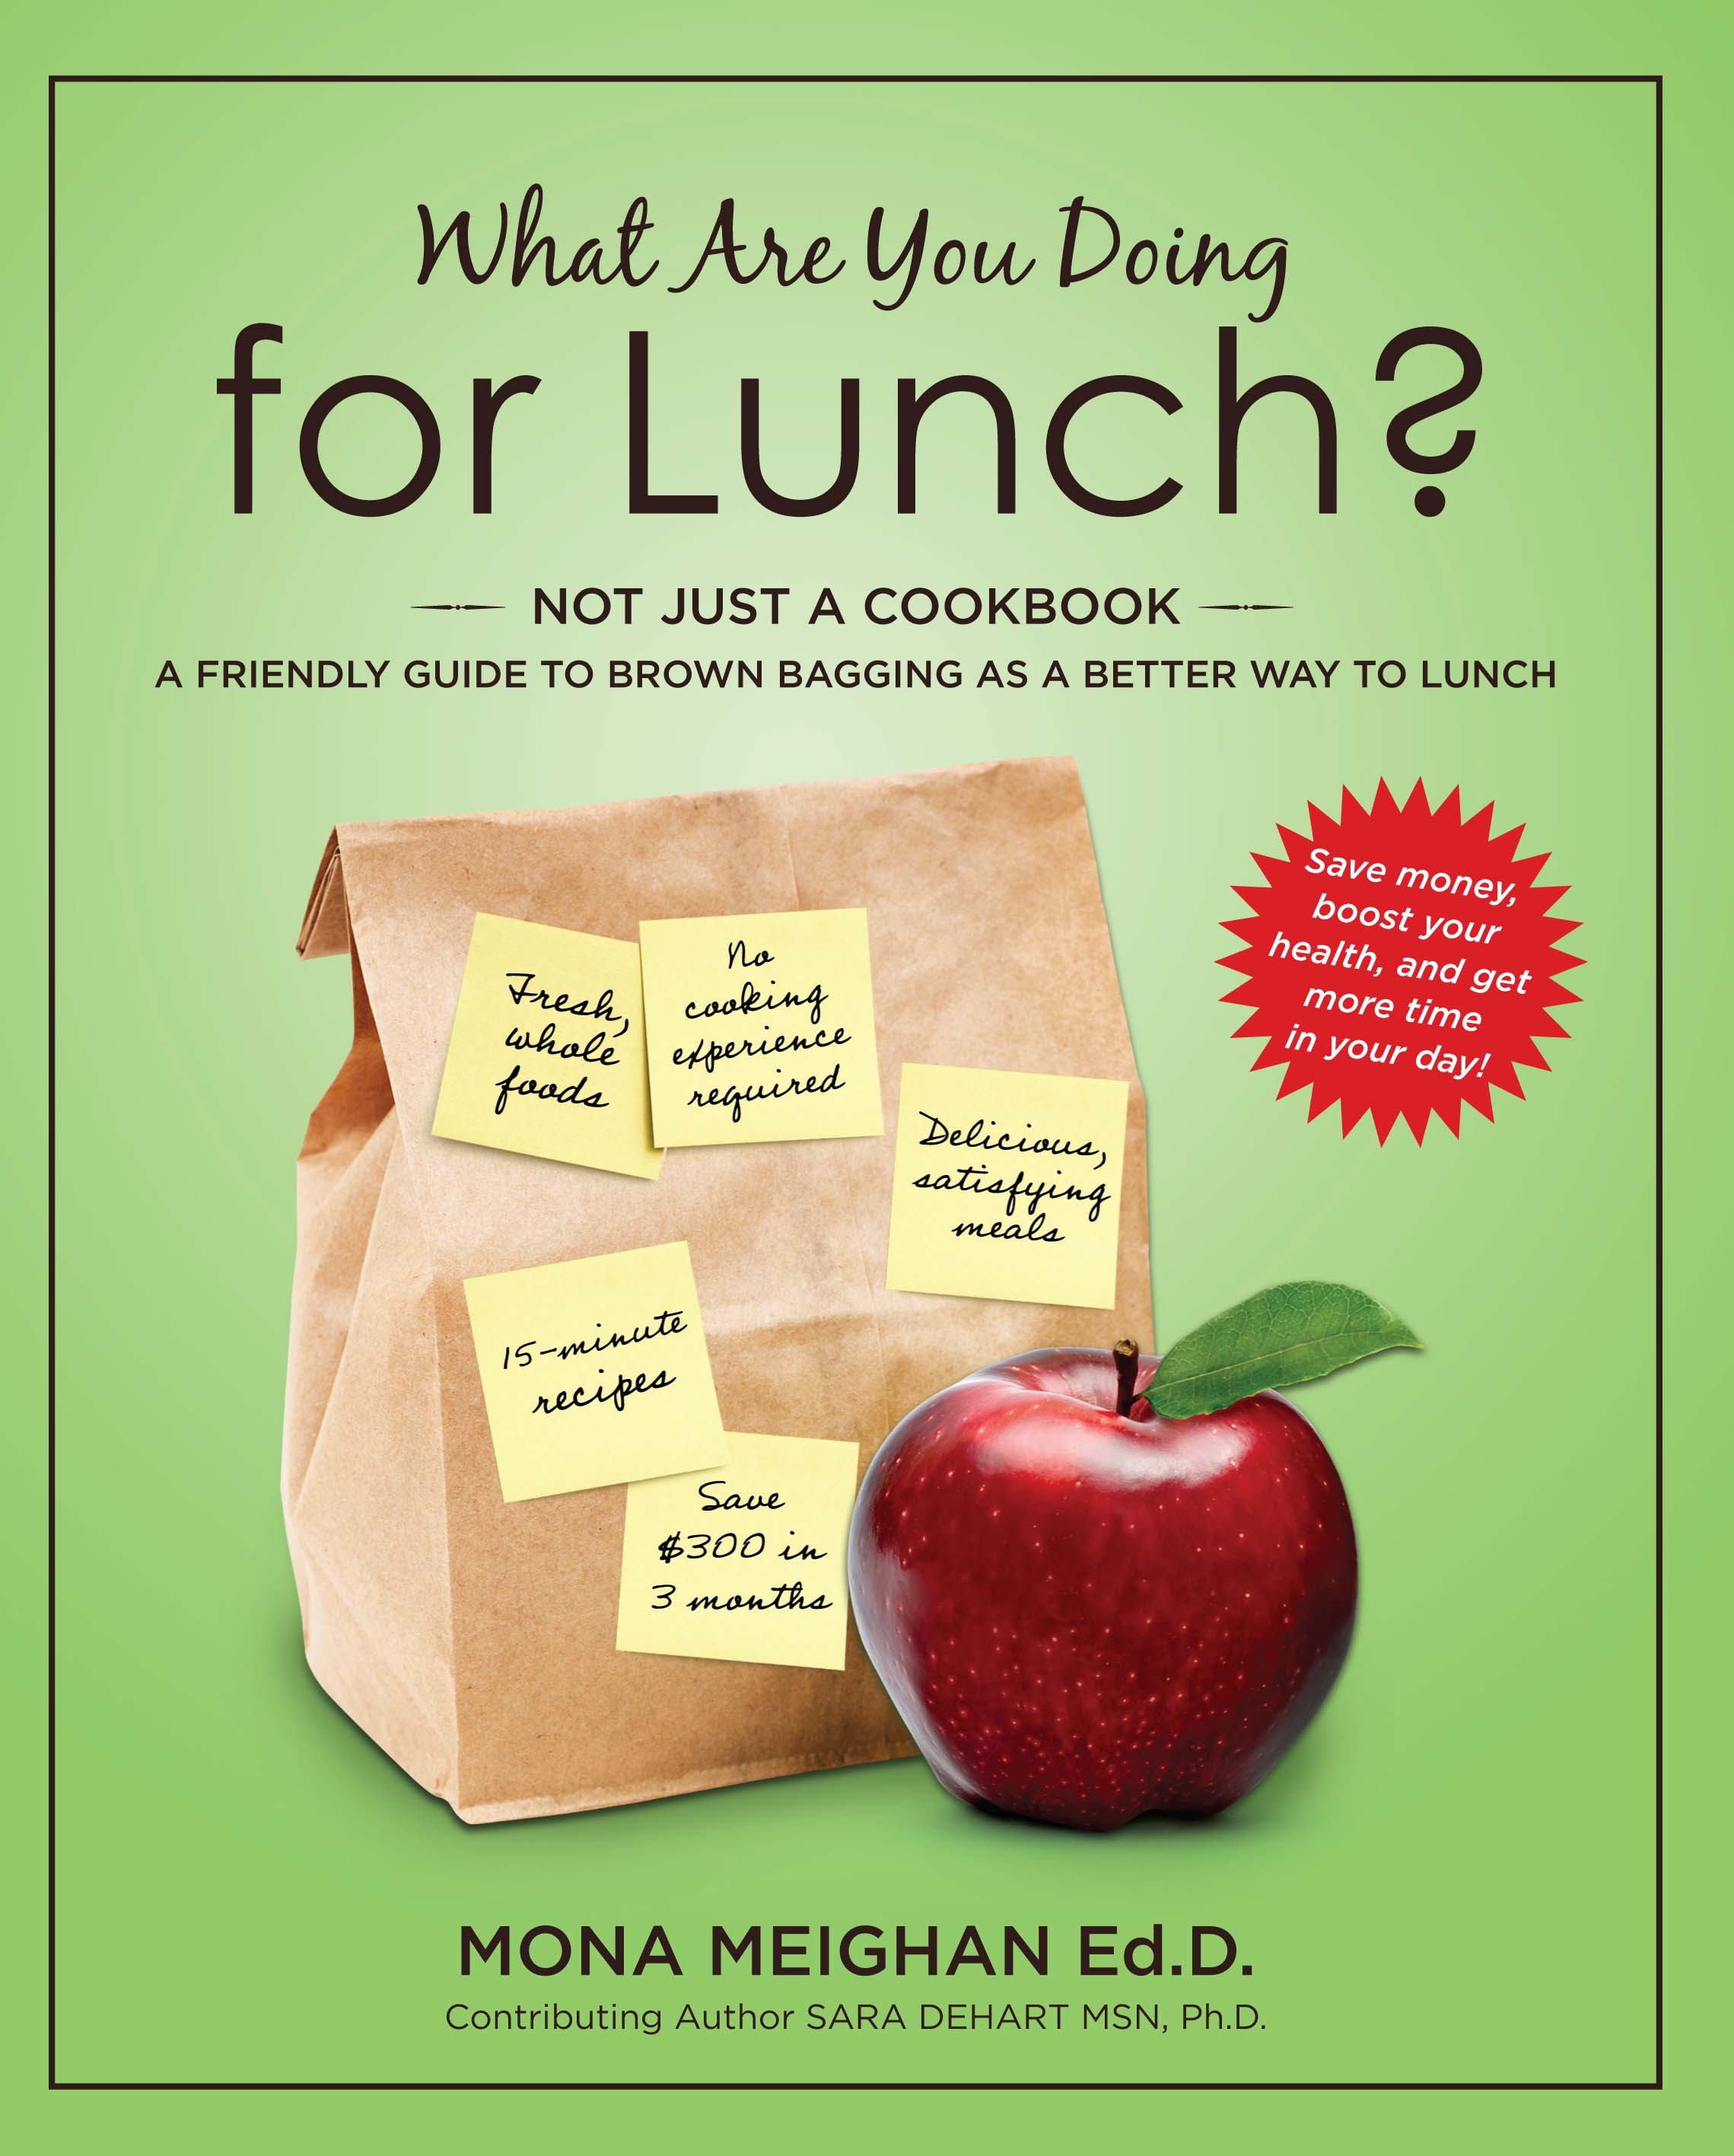 What Are You Doing for Lunch: A Friendly Guide To Brown Bagging As A Better Way To Lunch